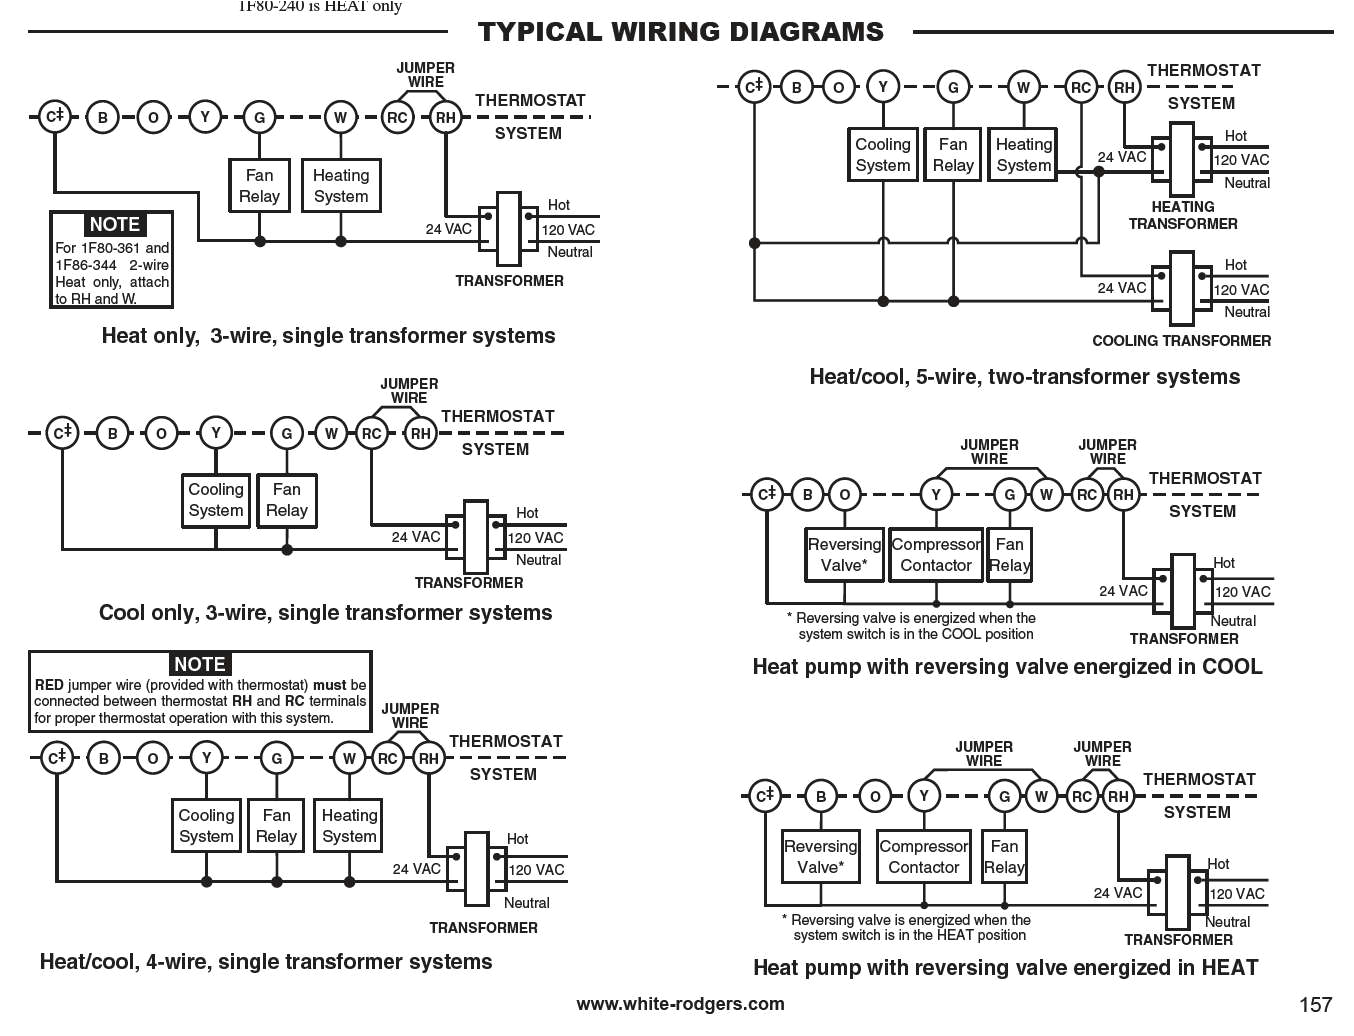 how wire a white rodgers room thermostat white rodgers thermostat white rodgers thermostat wiring diagram 1f89 211 white rodgers wiring diagram